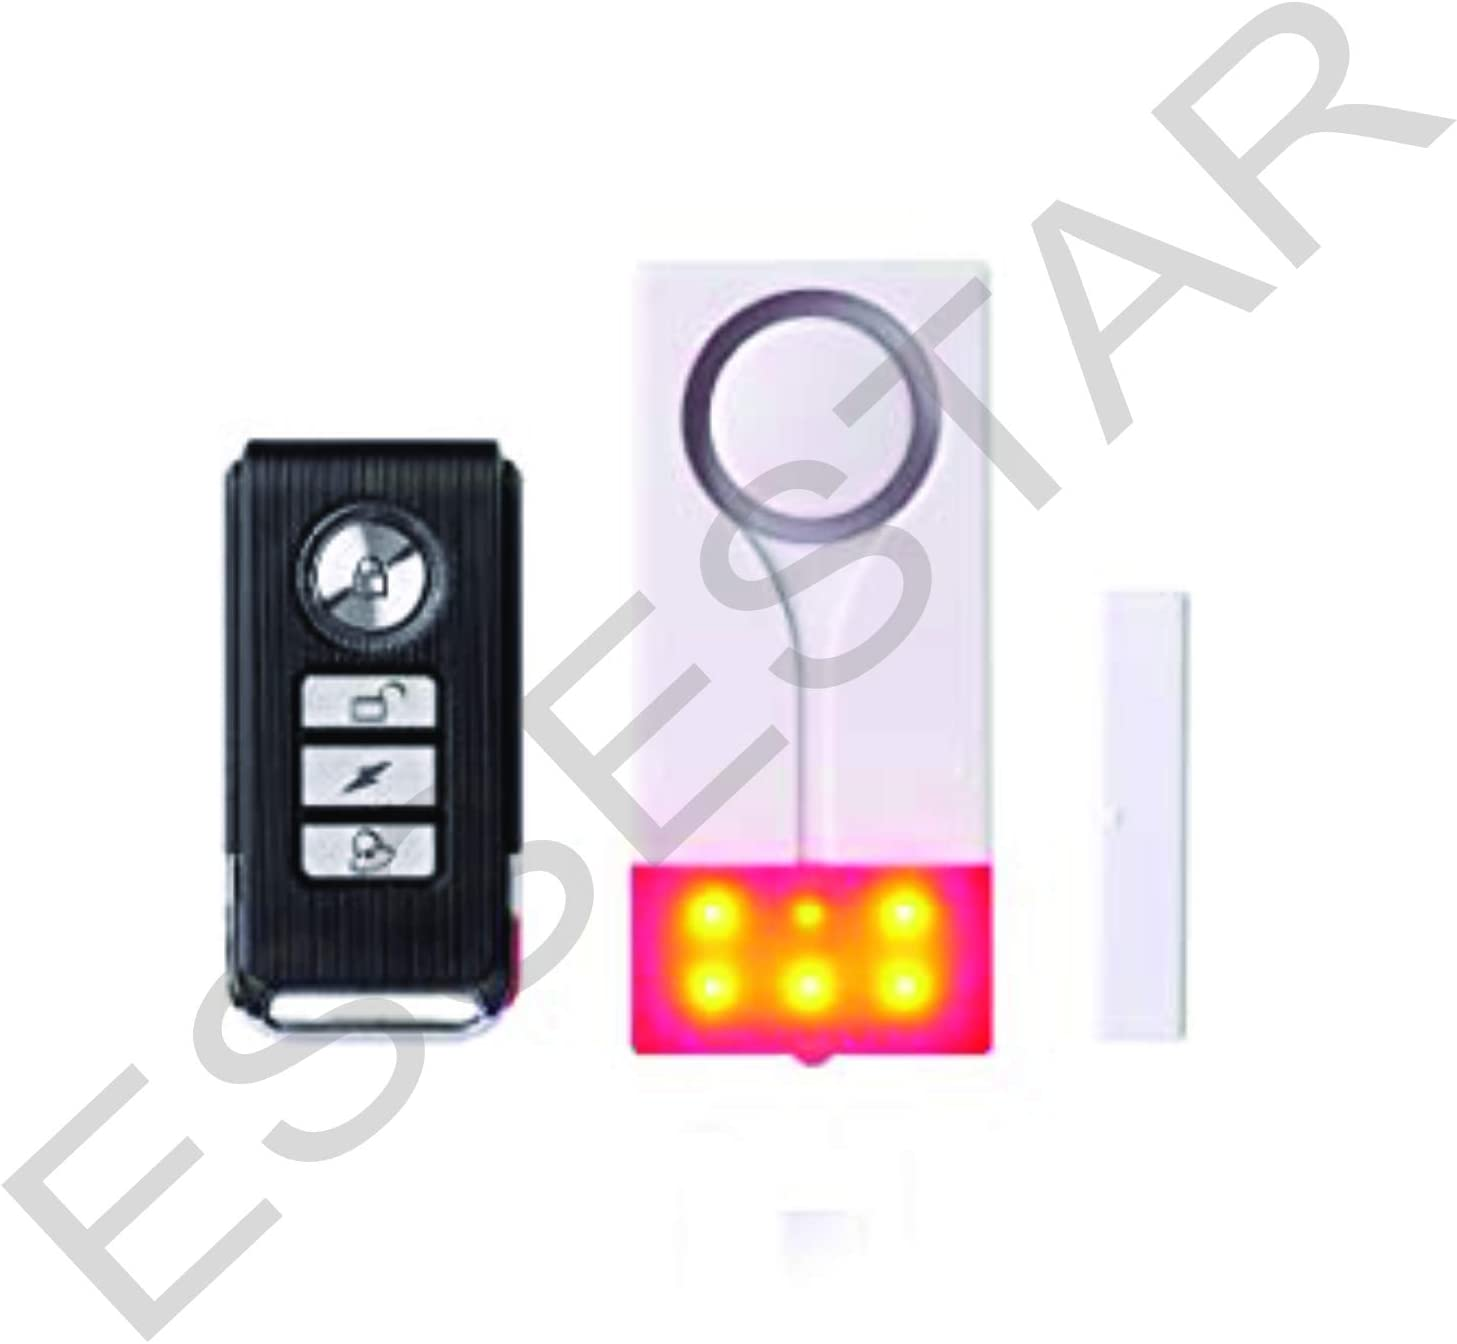 Scooter Vibration Magnetic Home Anti-theft For Door Window Small Security Alarm